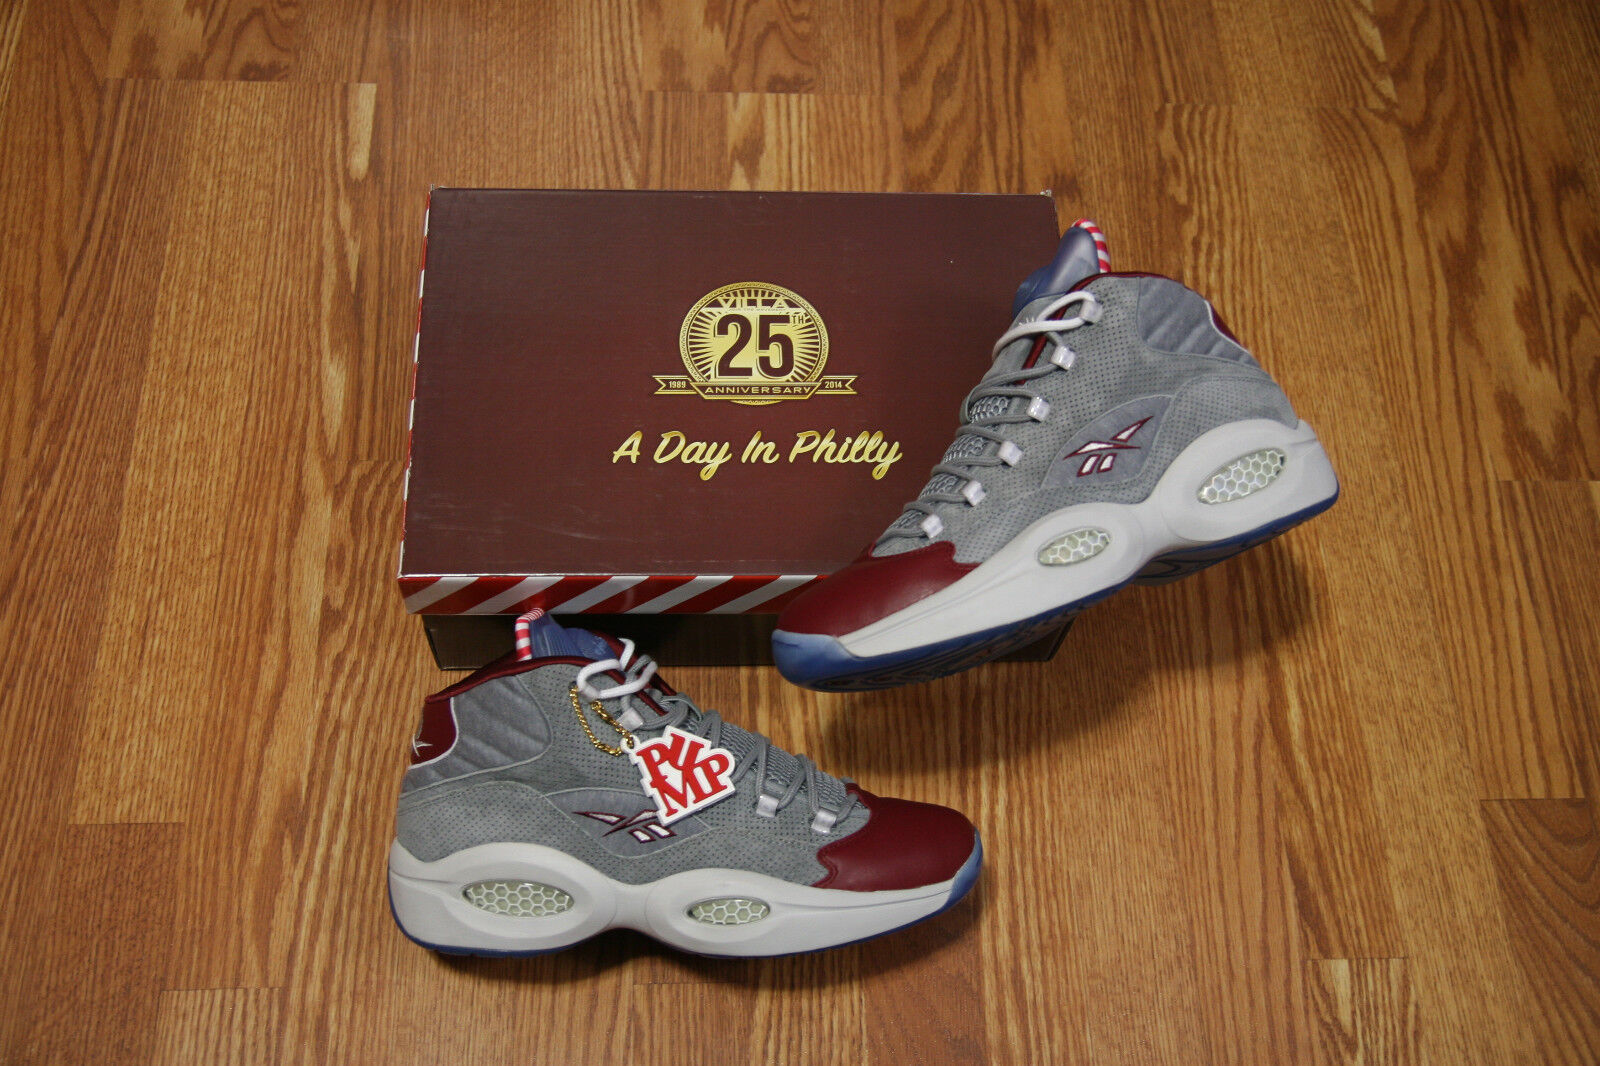 REEBOK VILLA PUMP QUESTION A DAY IN PHILLY Limited Box Sz 12